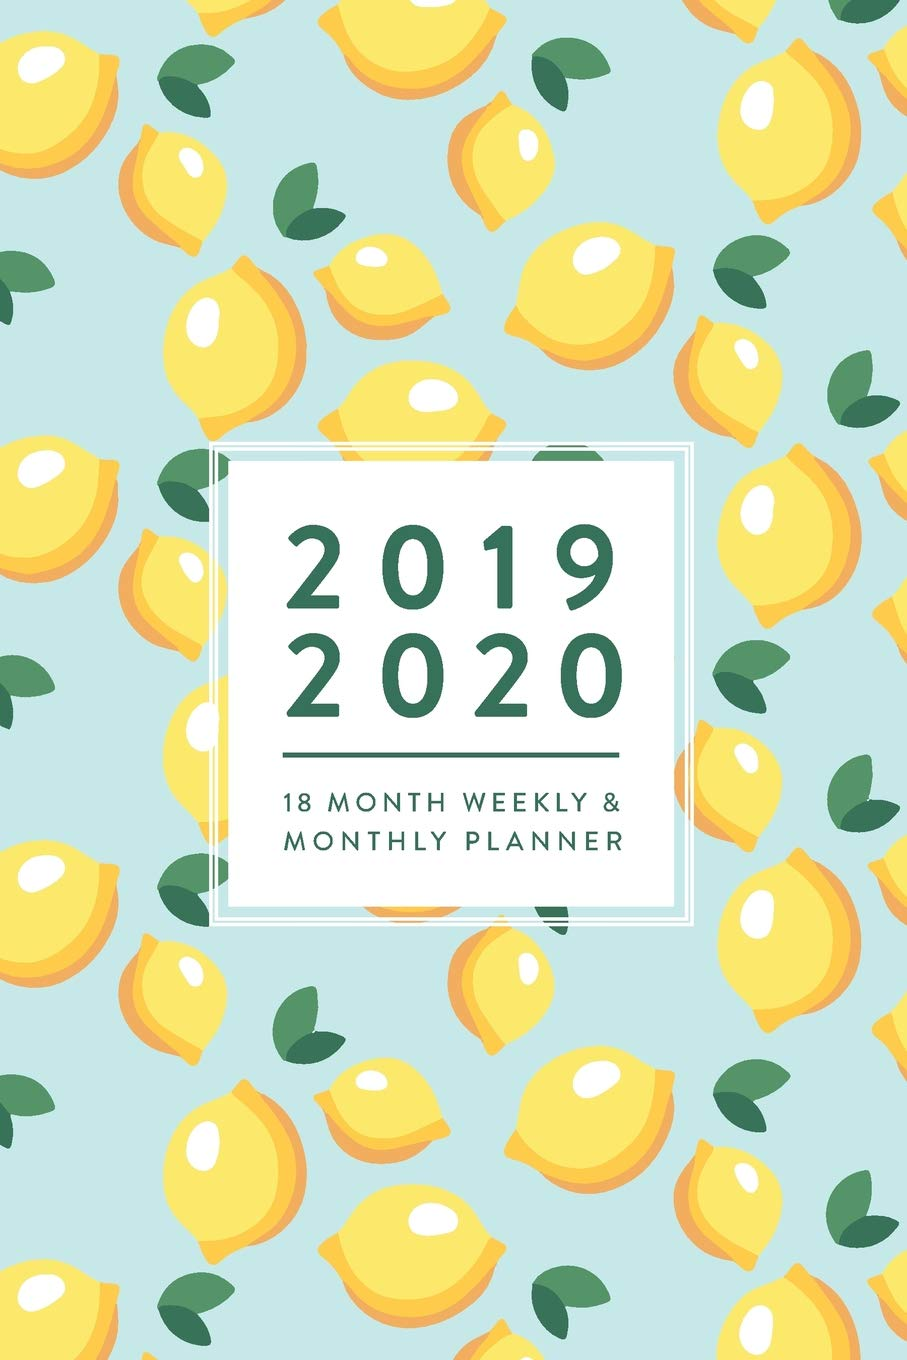 2019 2020, 18 Month Weekly & Monthly Planner: Blue Lemons.